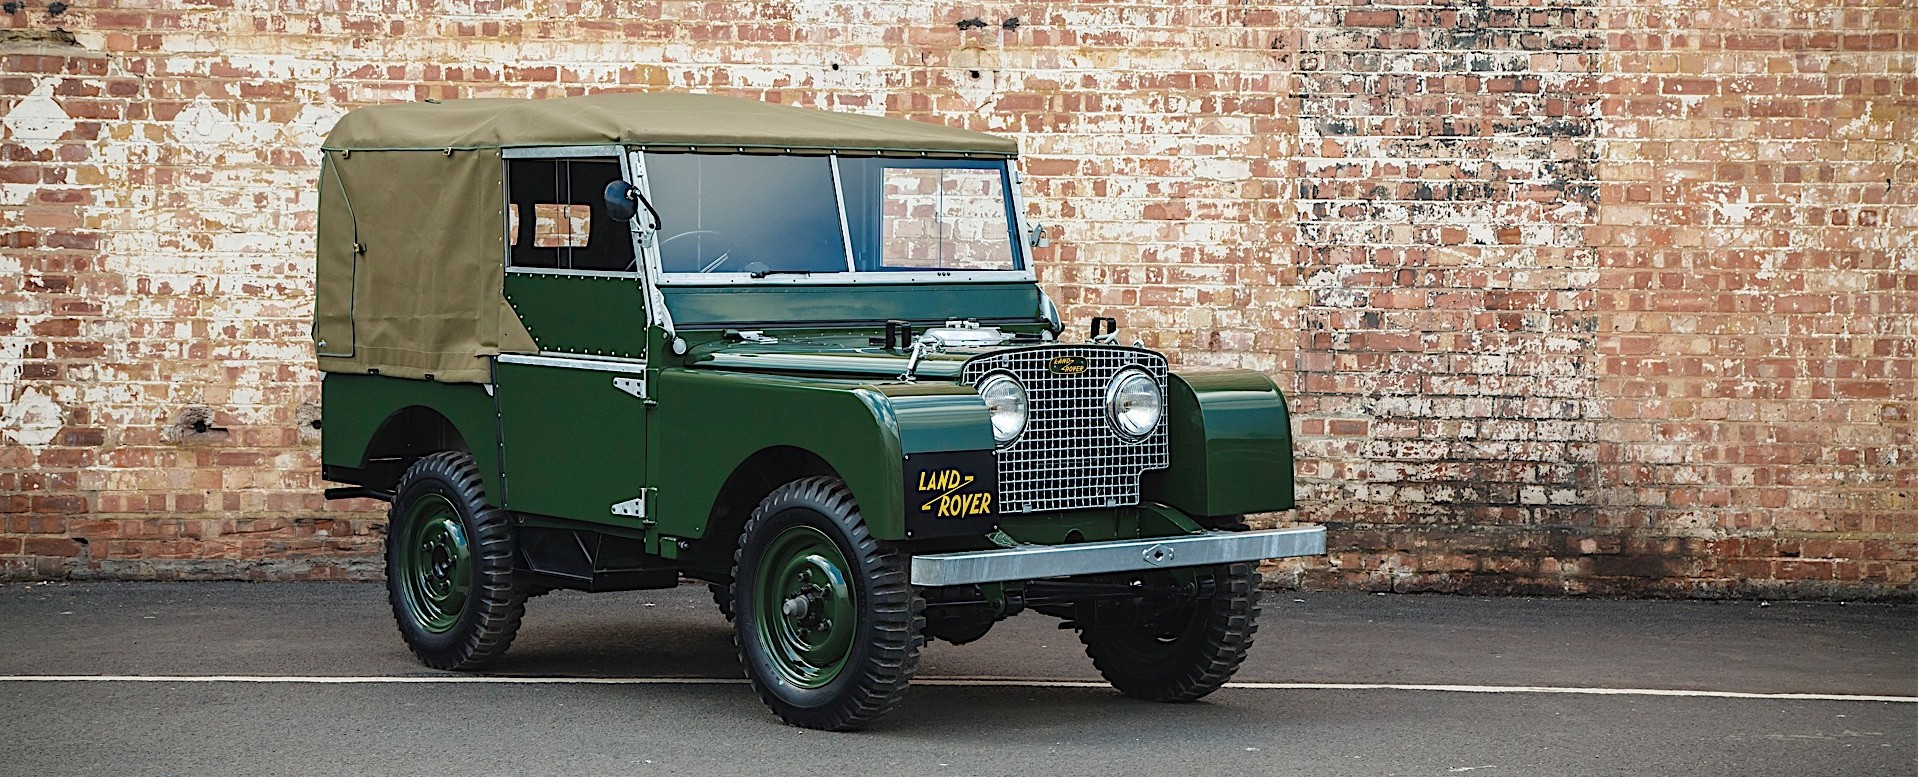 Land Rover S 4x4 Systems A Brief Guide Autoevolution